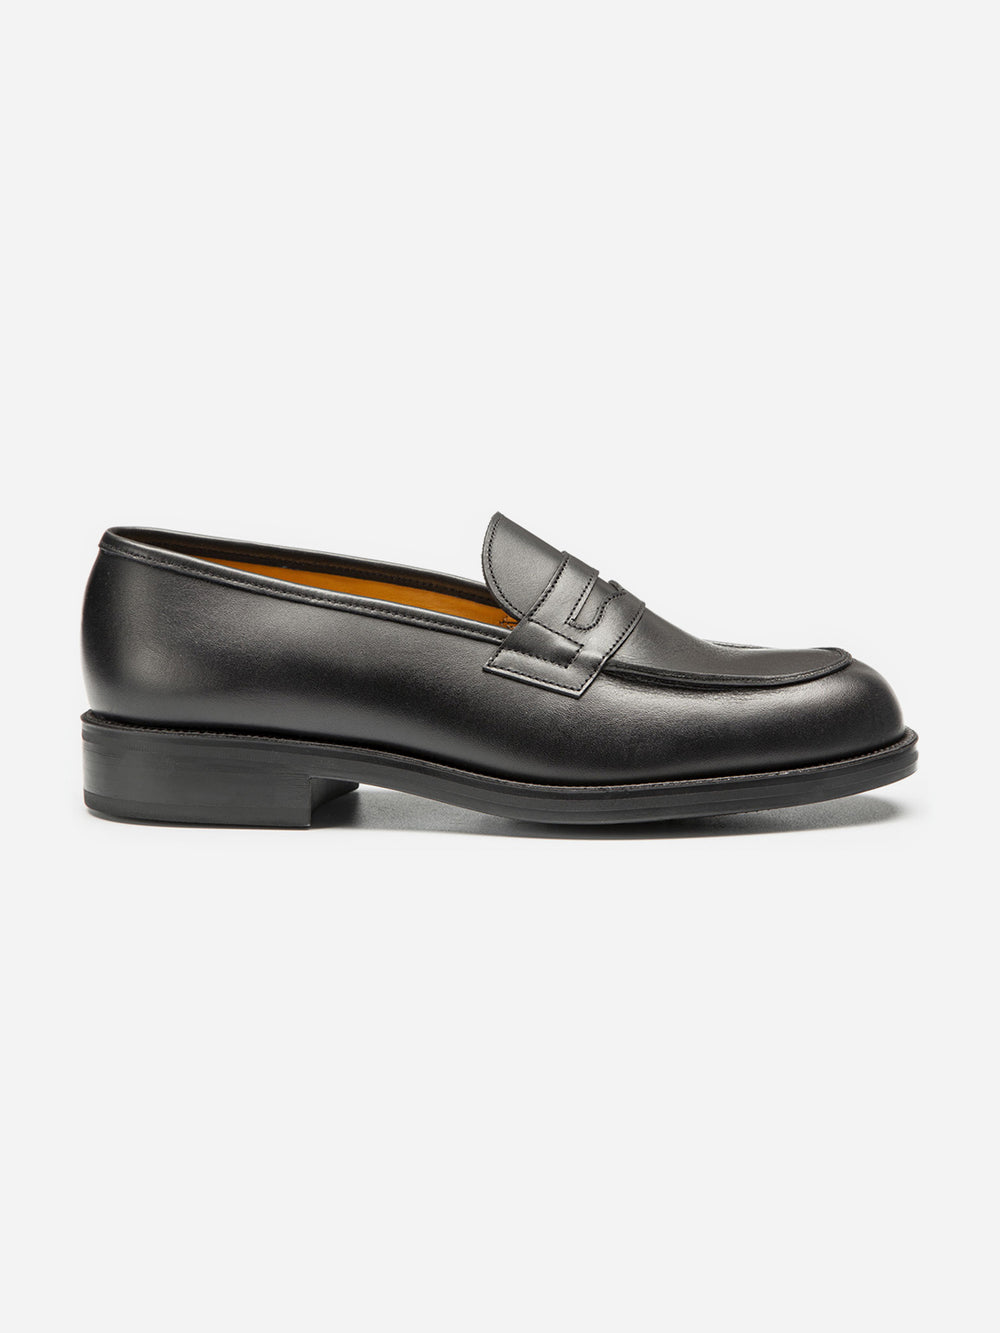 ons mens clothing kleman dalior 2 leather loafers shoes NOIR